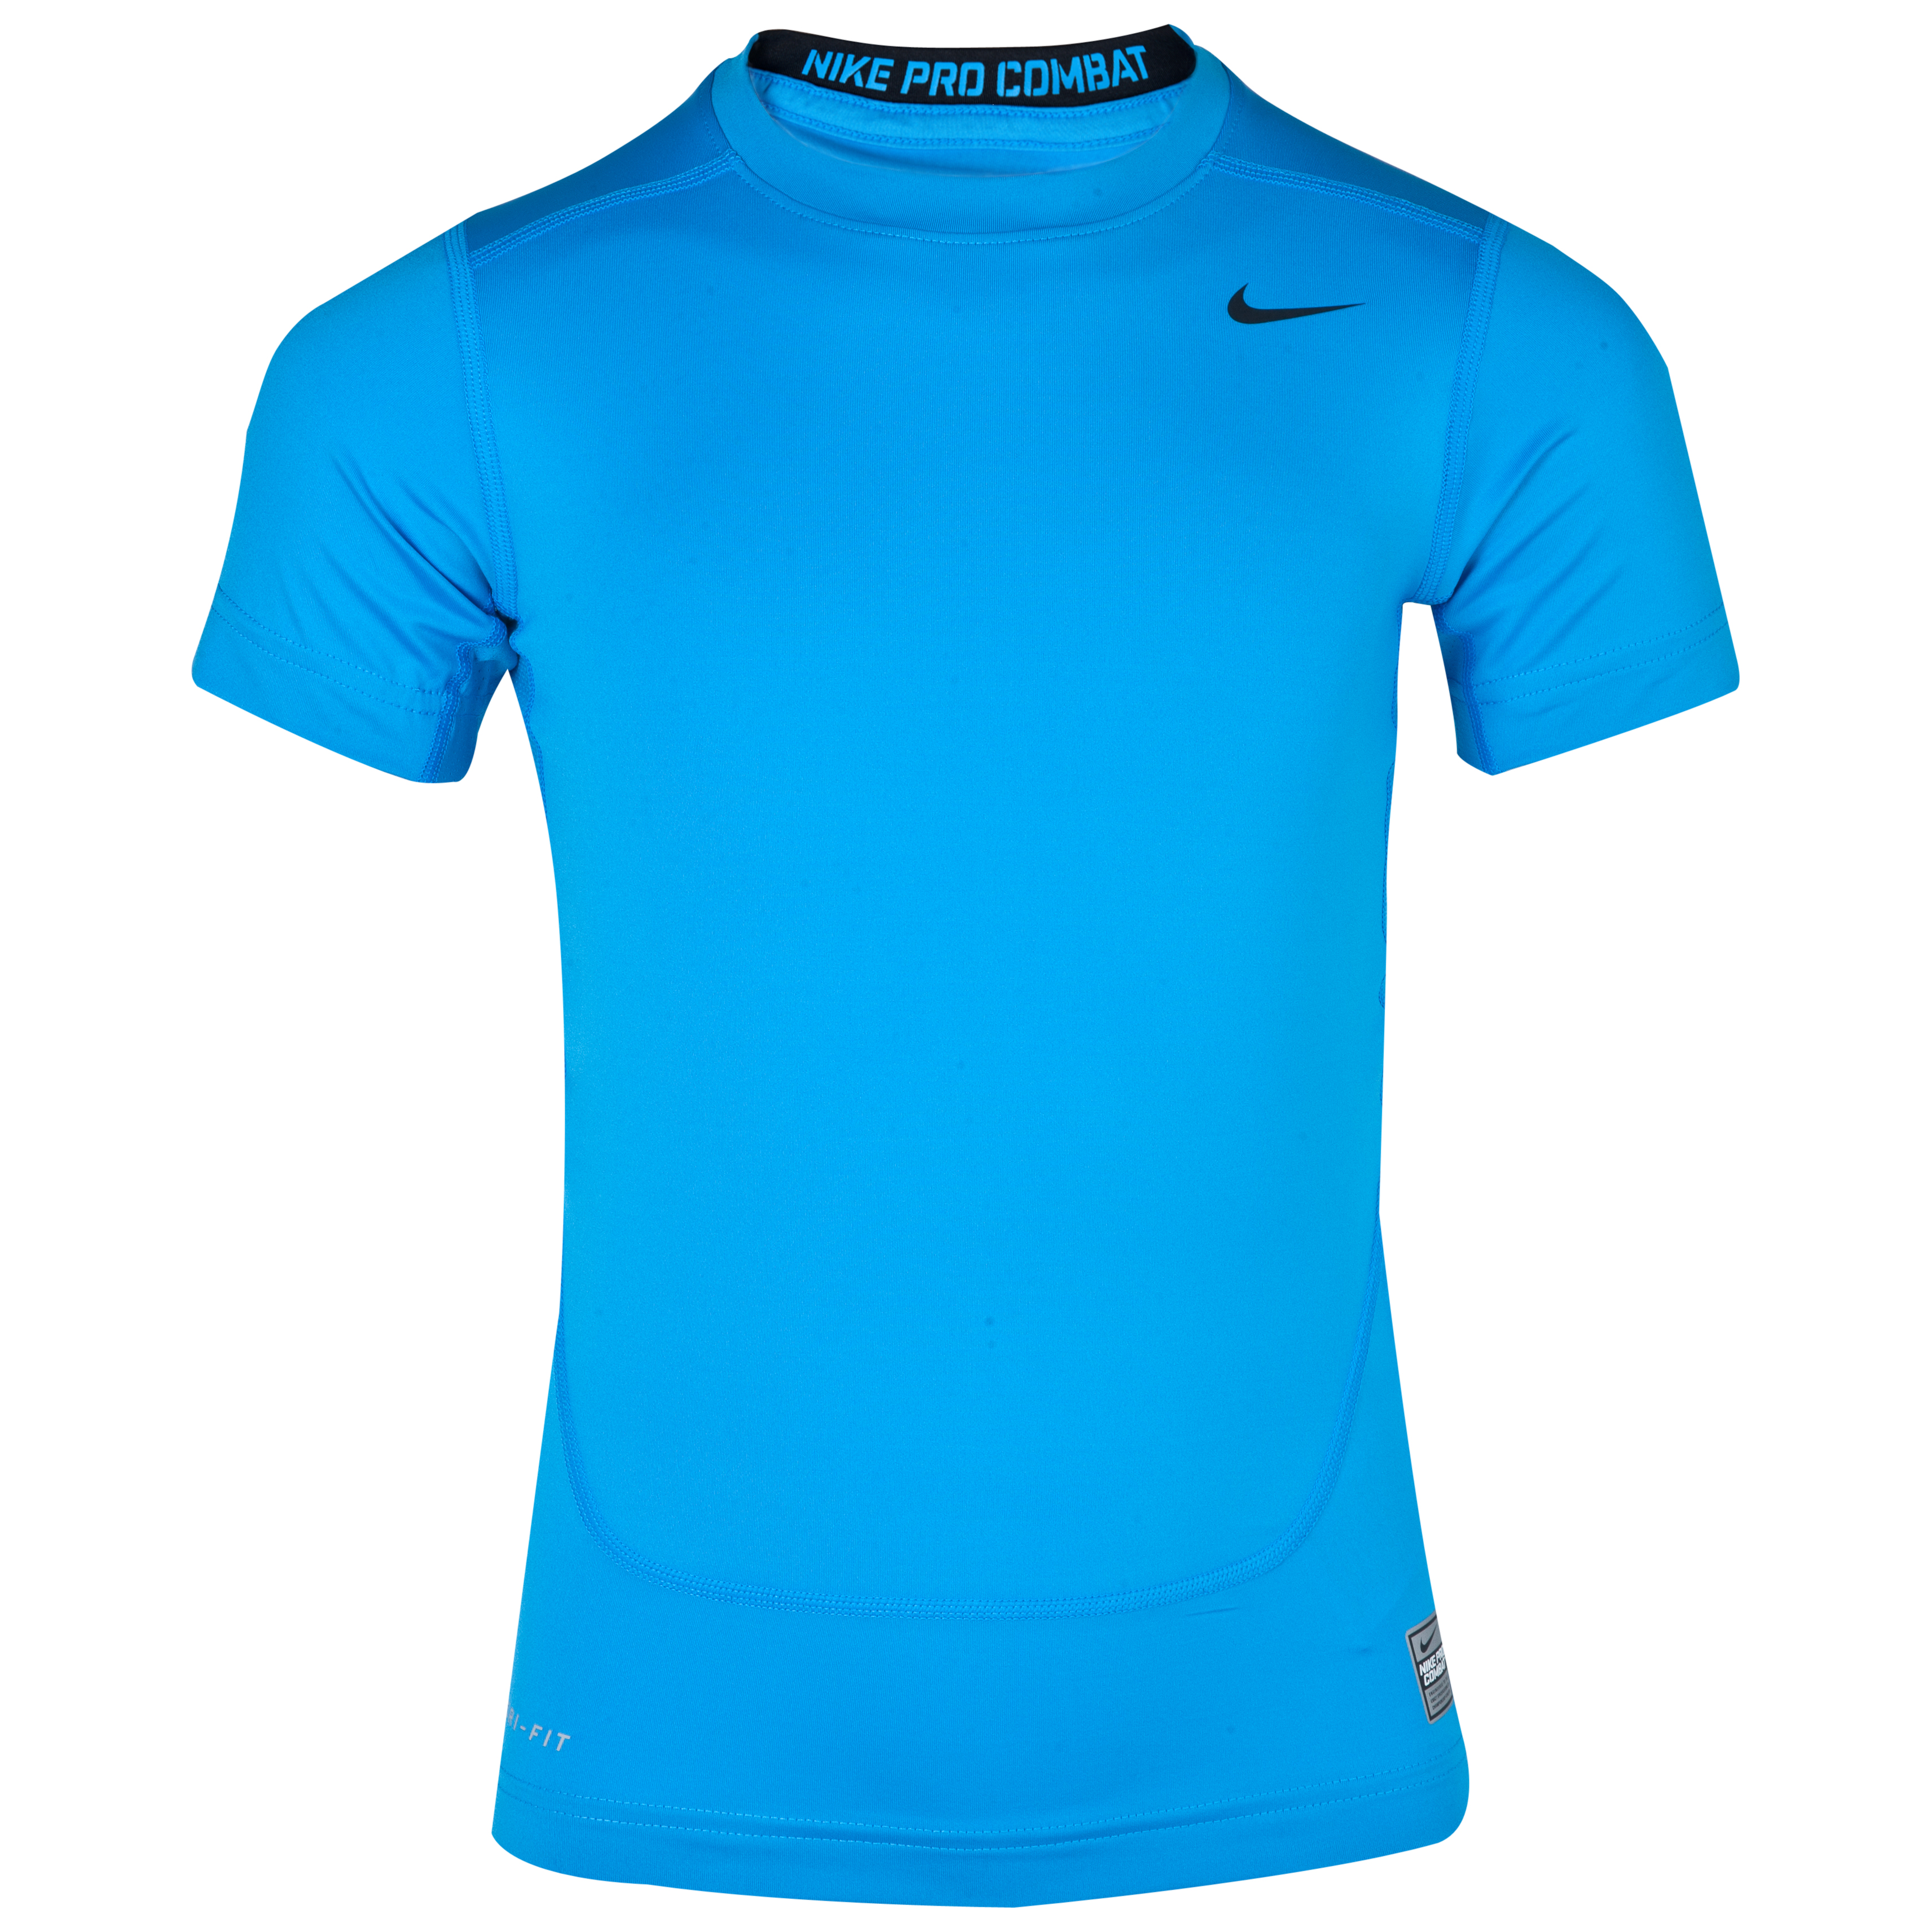 Nike Pro Combat Core Base Layer Top - Kids - Blue Hero/Black Blue